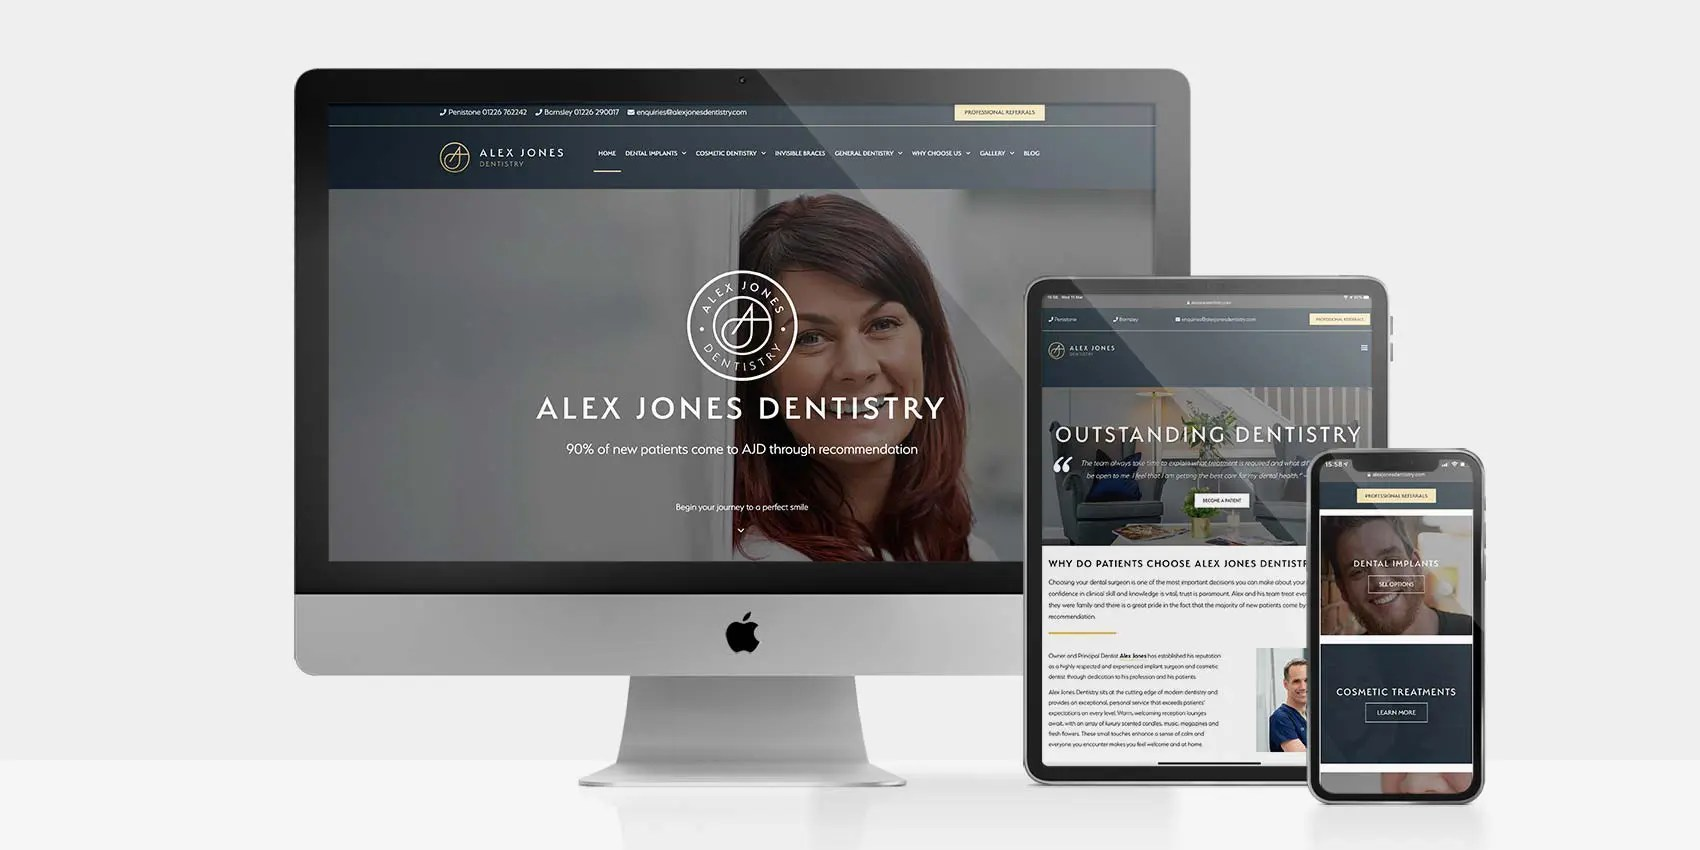 Alex Jones Dentistry: By Factory, PPC Agency In Manchester